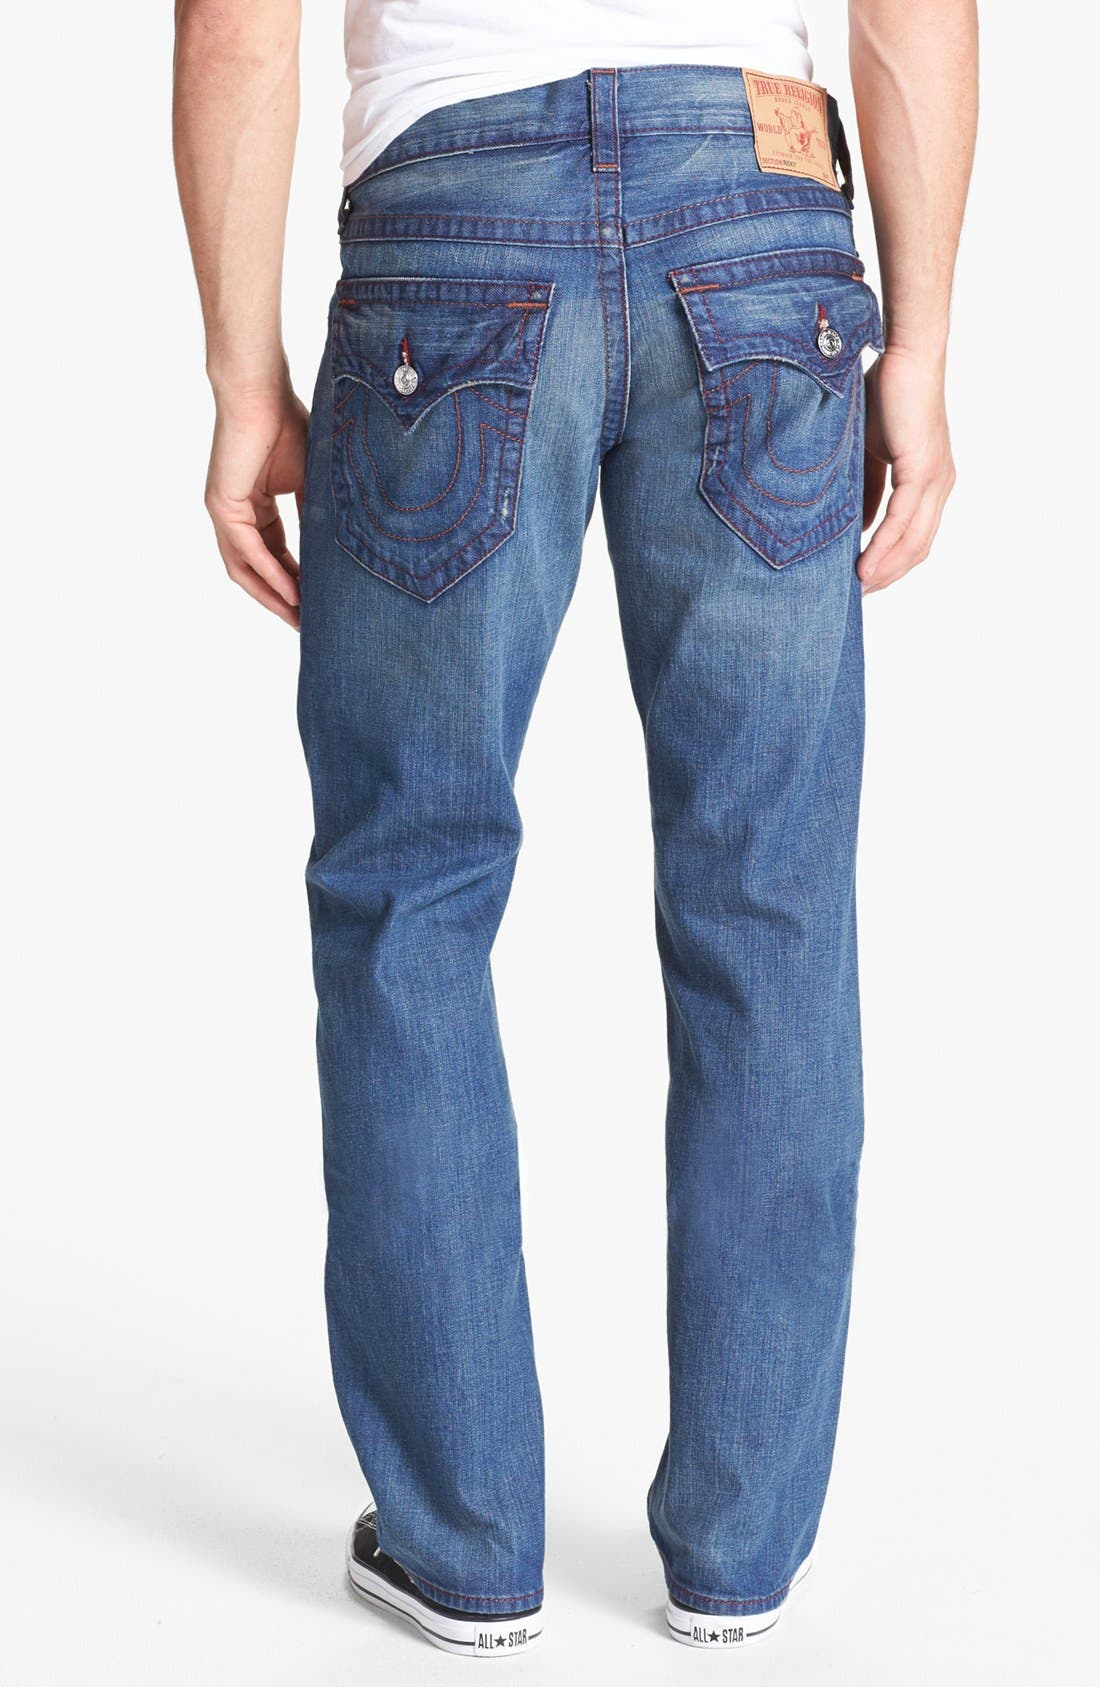 Main Image - True Religion Brand Jeans 'Ricky' Straight Leg Jeans (Medium Drifter)